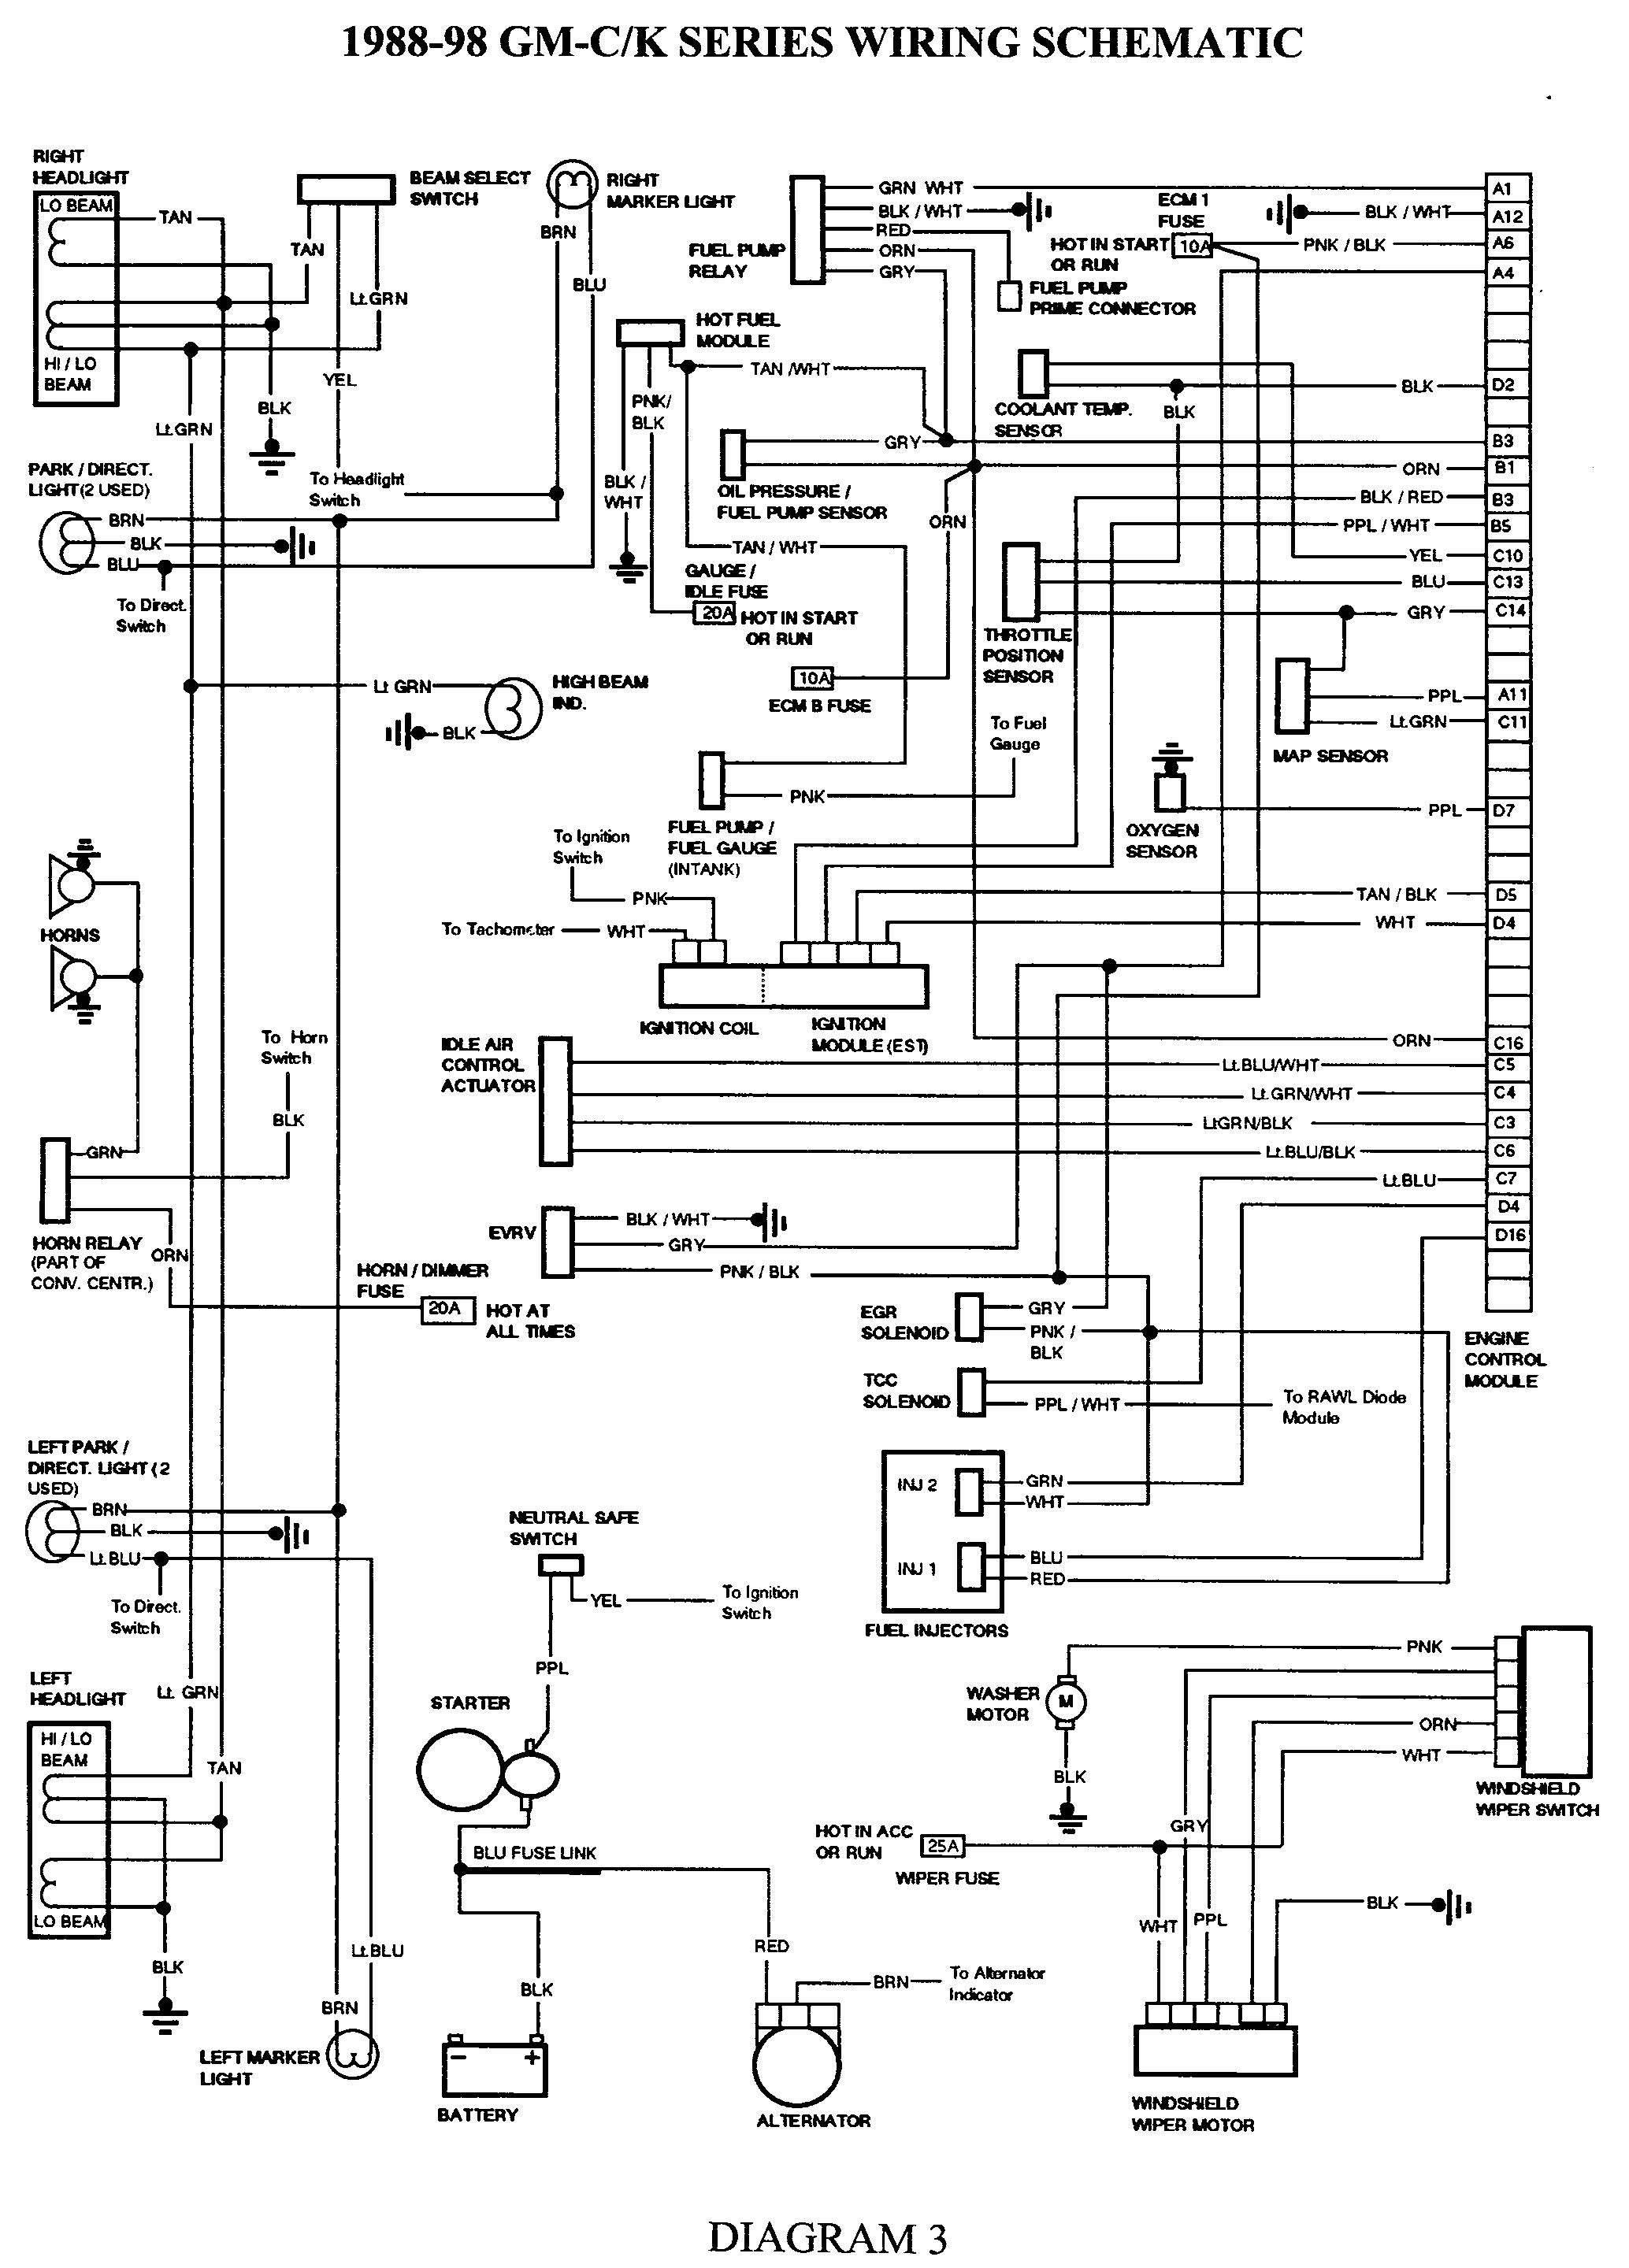 Wiring Diagram 2009 Chevy Silverado | Wiring Schematic Diagram | Electrical  diagram, Chevy 1500, Electrical wiring diagramPinterest